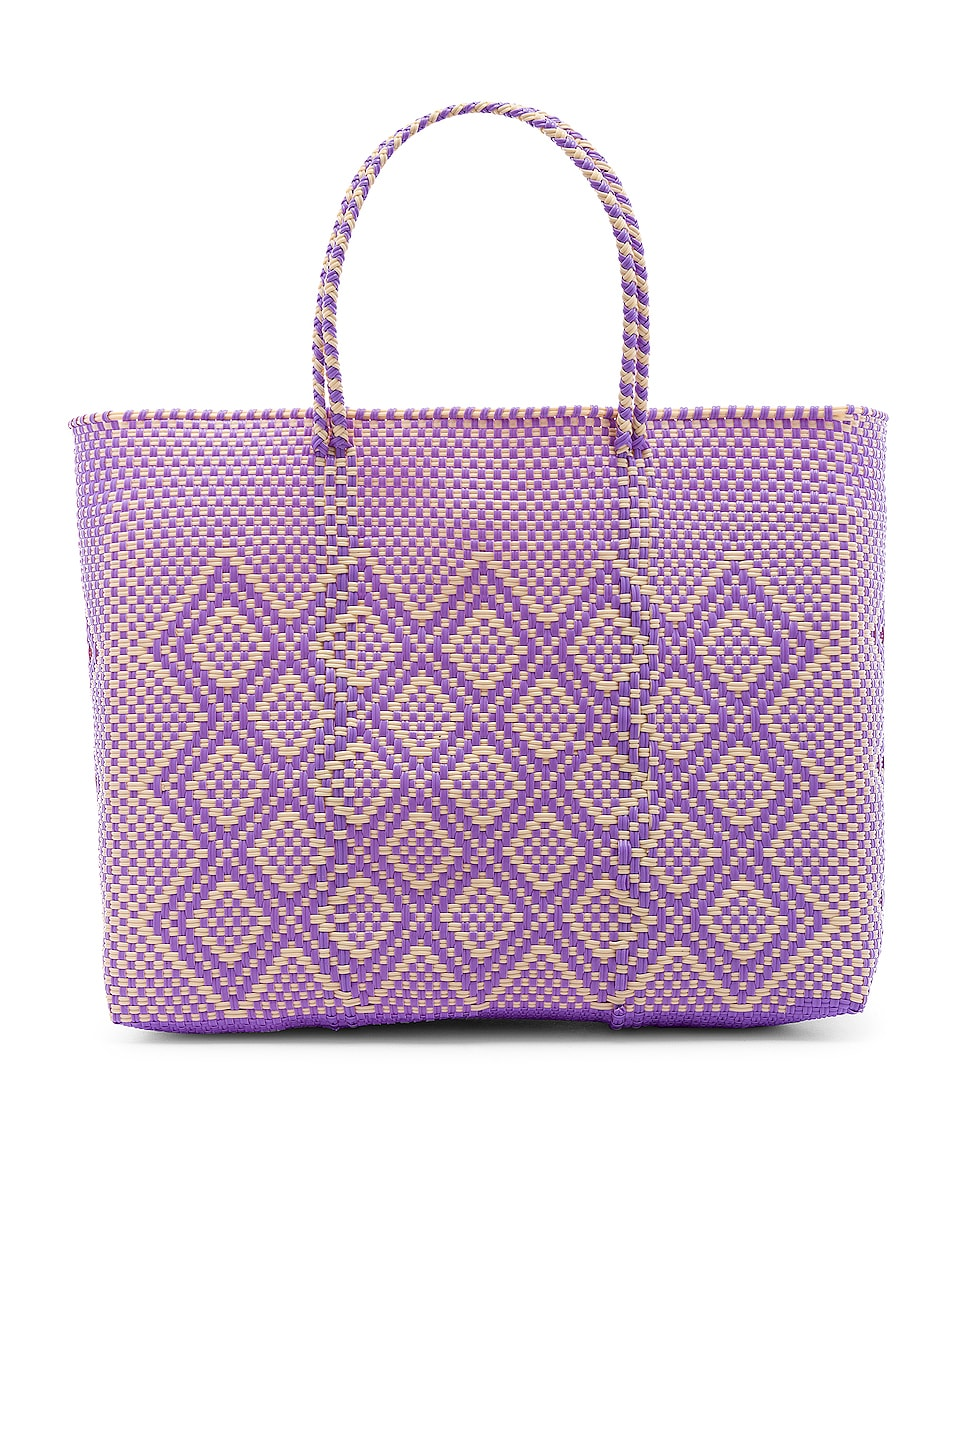 House of Harlow 1960 X REVOLVE Kasa Tote in Lilac Multi